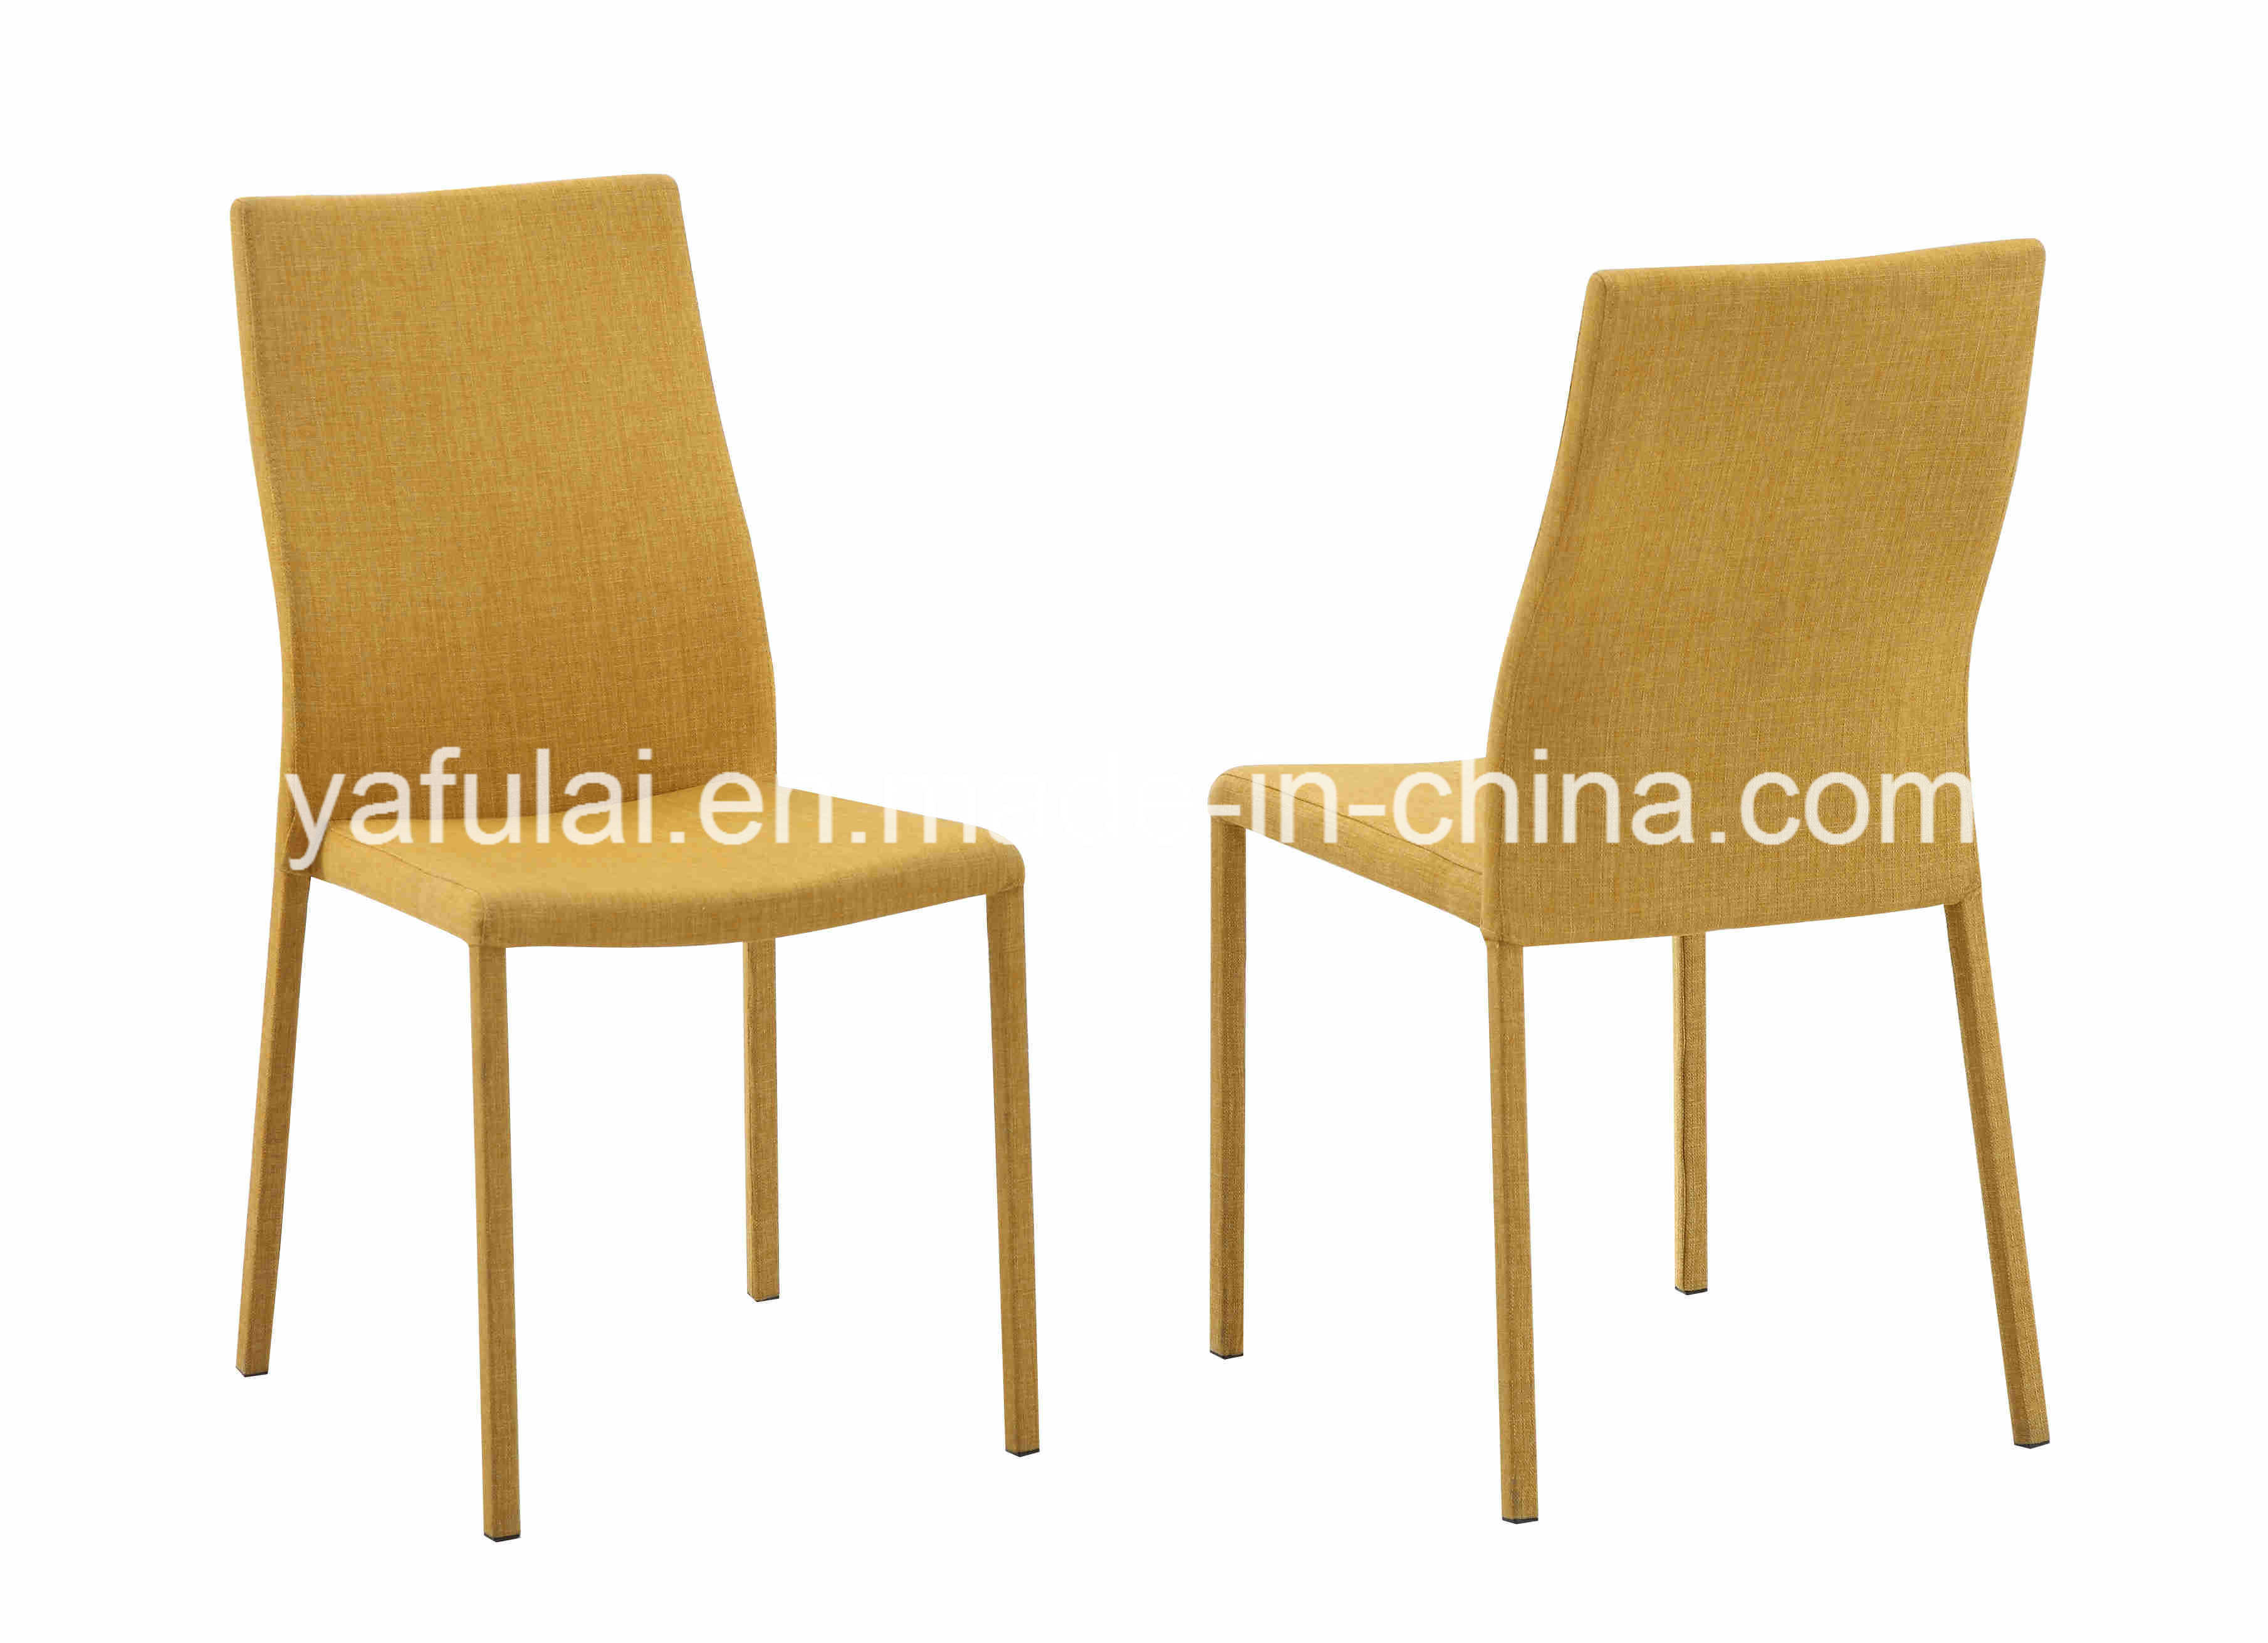 Remarkable Hot Item Promotional Fabric Dining Chair Covers Oem Dining Furniture Caraccident5 Cool Chair Designs And Ideas Caraccident5Info